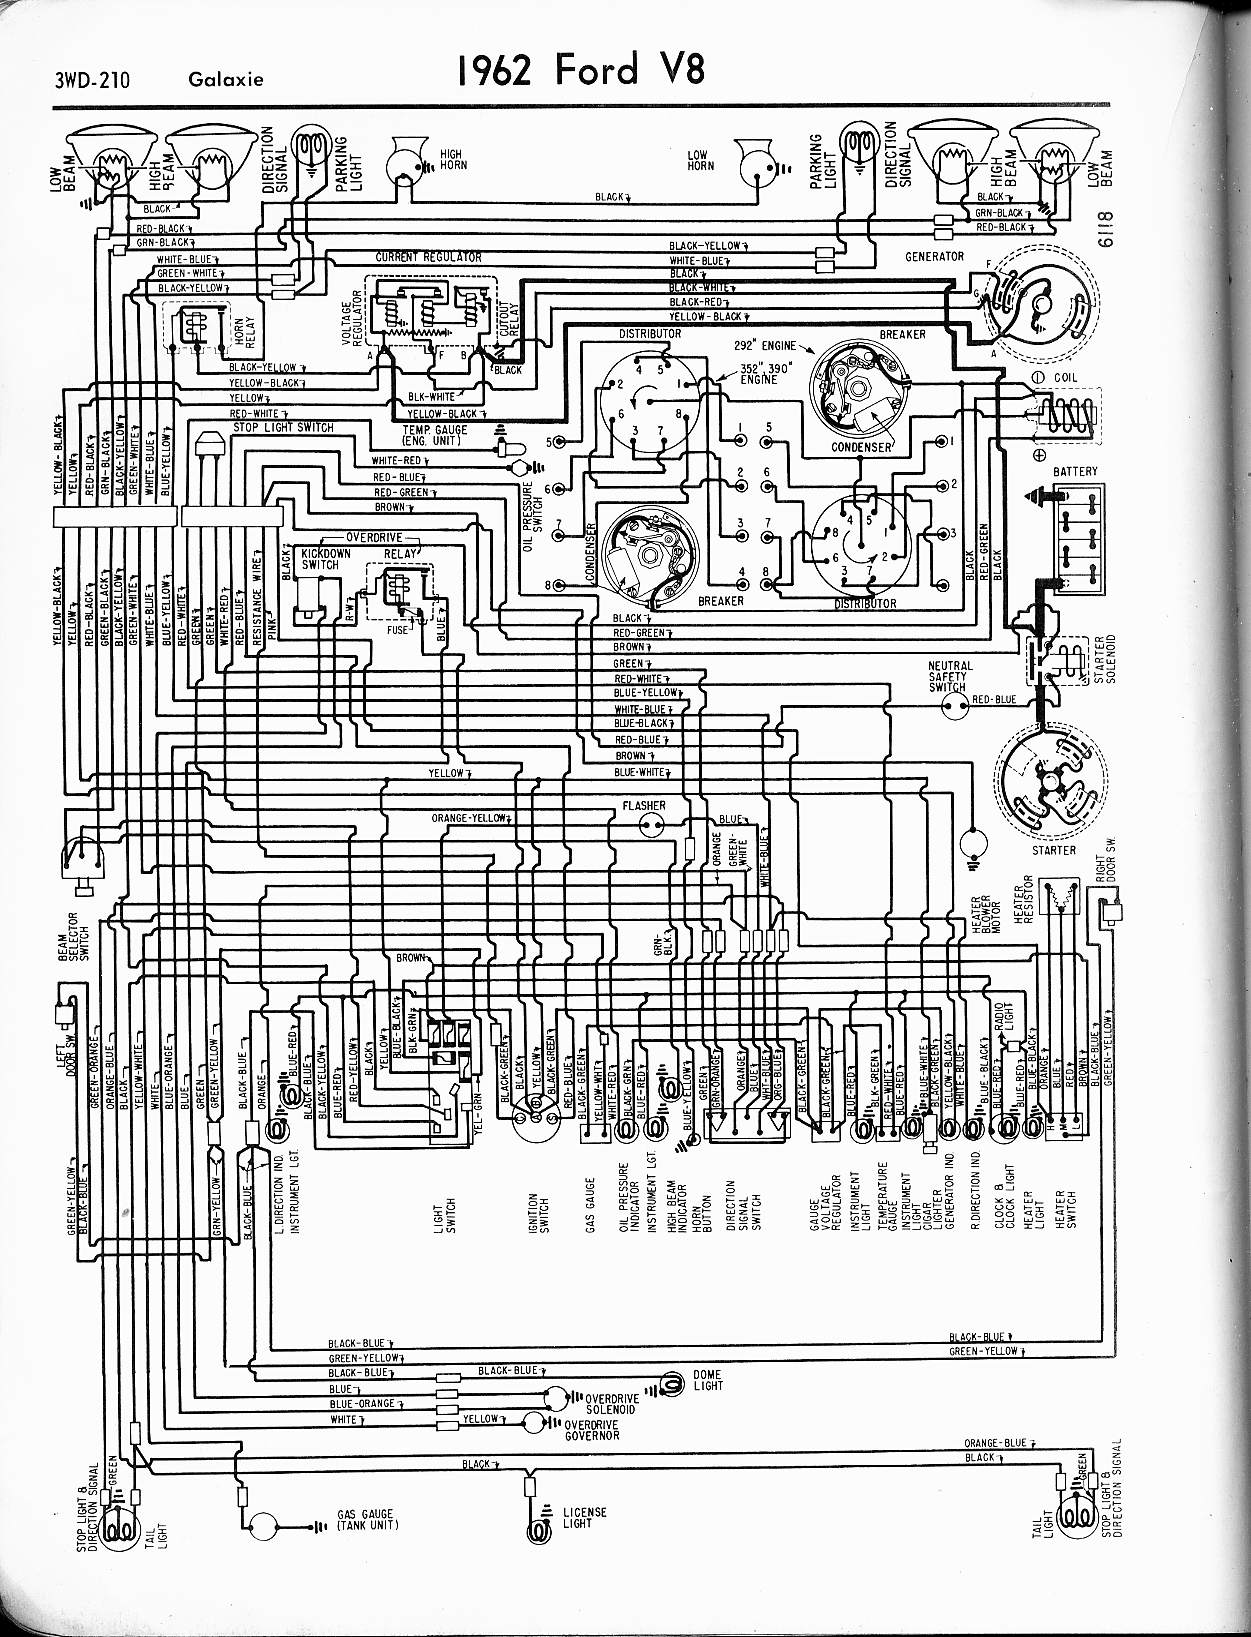 1966 ford ignition switch wiring diagram, 1969 ford ignition switch wiring diagram, 1977 ford ignition switch wiring diagram, 1968 ford ignition switch wiring diagram, 1979 ford ignition switch wiring diagram, 1967 ford ignition switch wiring diagram, on 1957 ford fairlane ignition switch wiring diagram